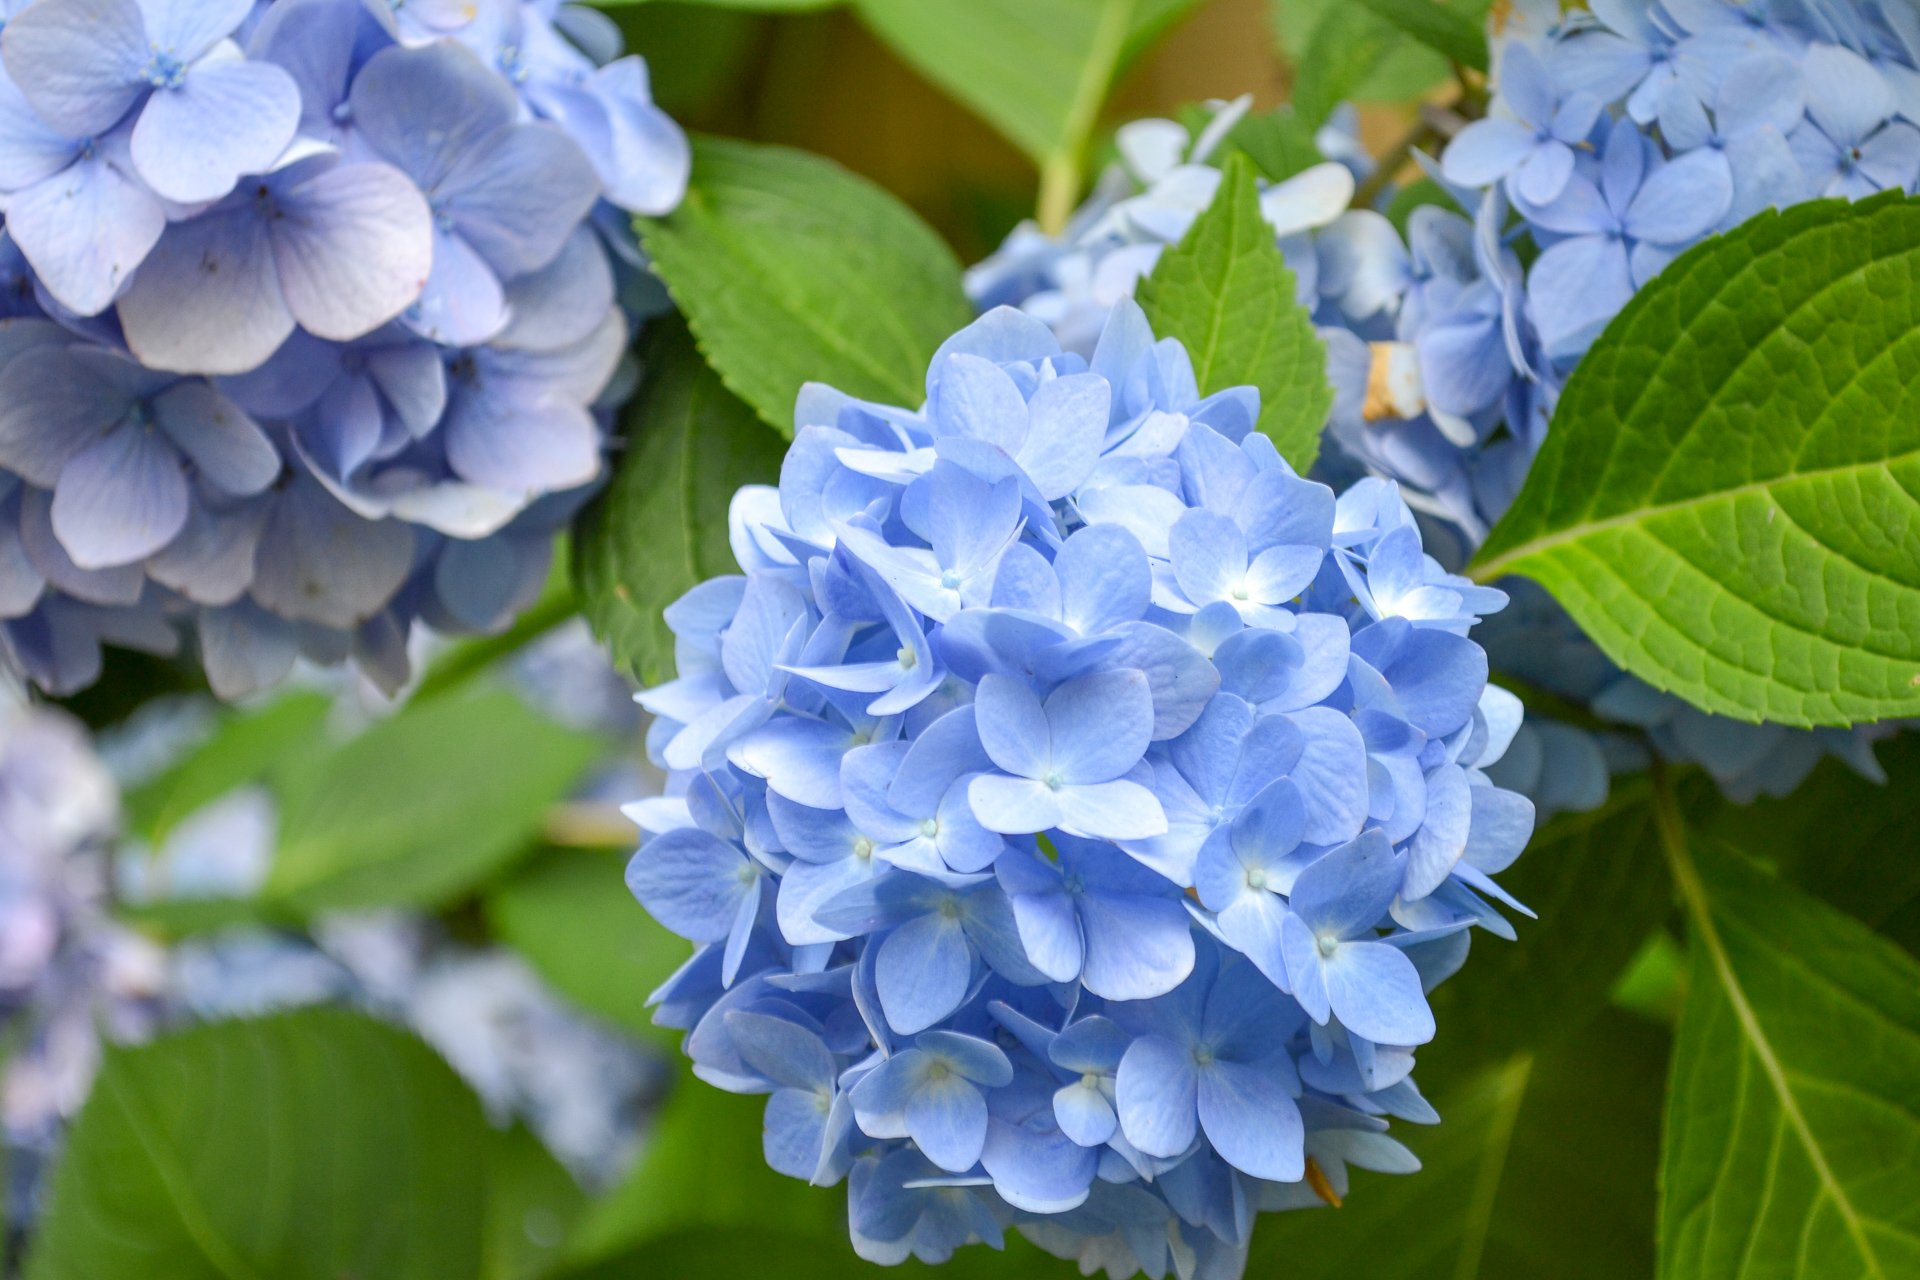 Blue hydrangea blooms, as seen here, are often brighter in acidic soil.